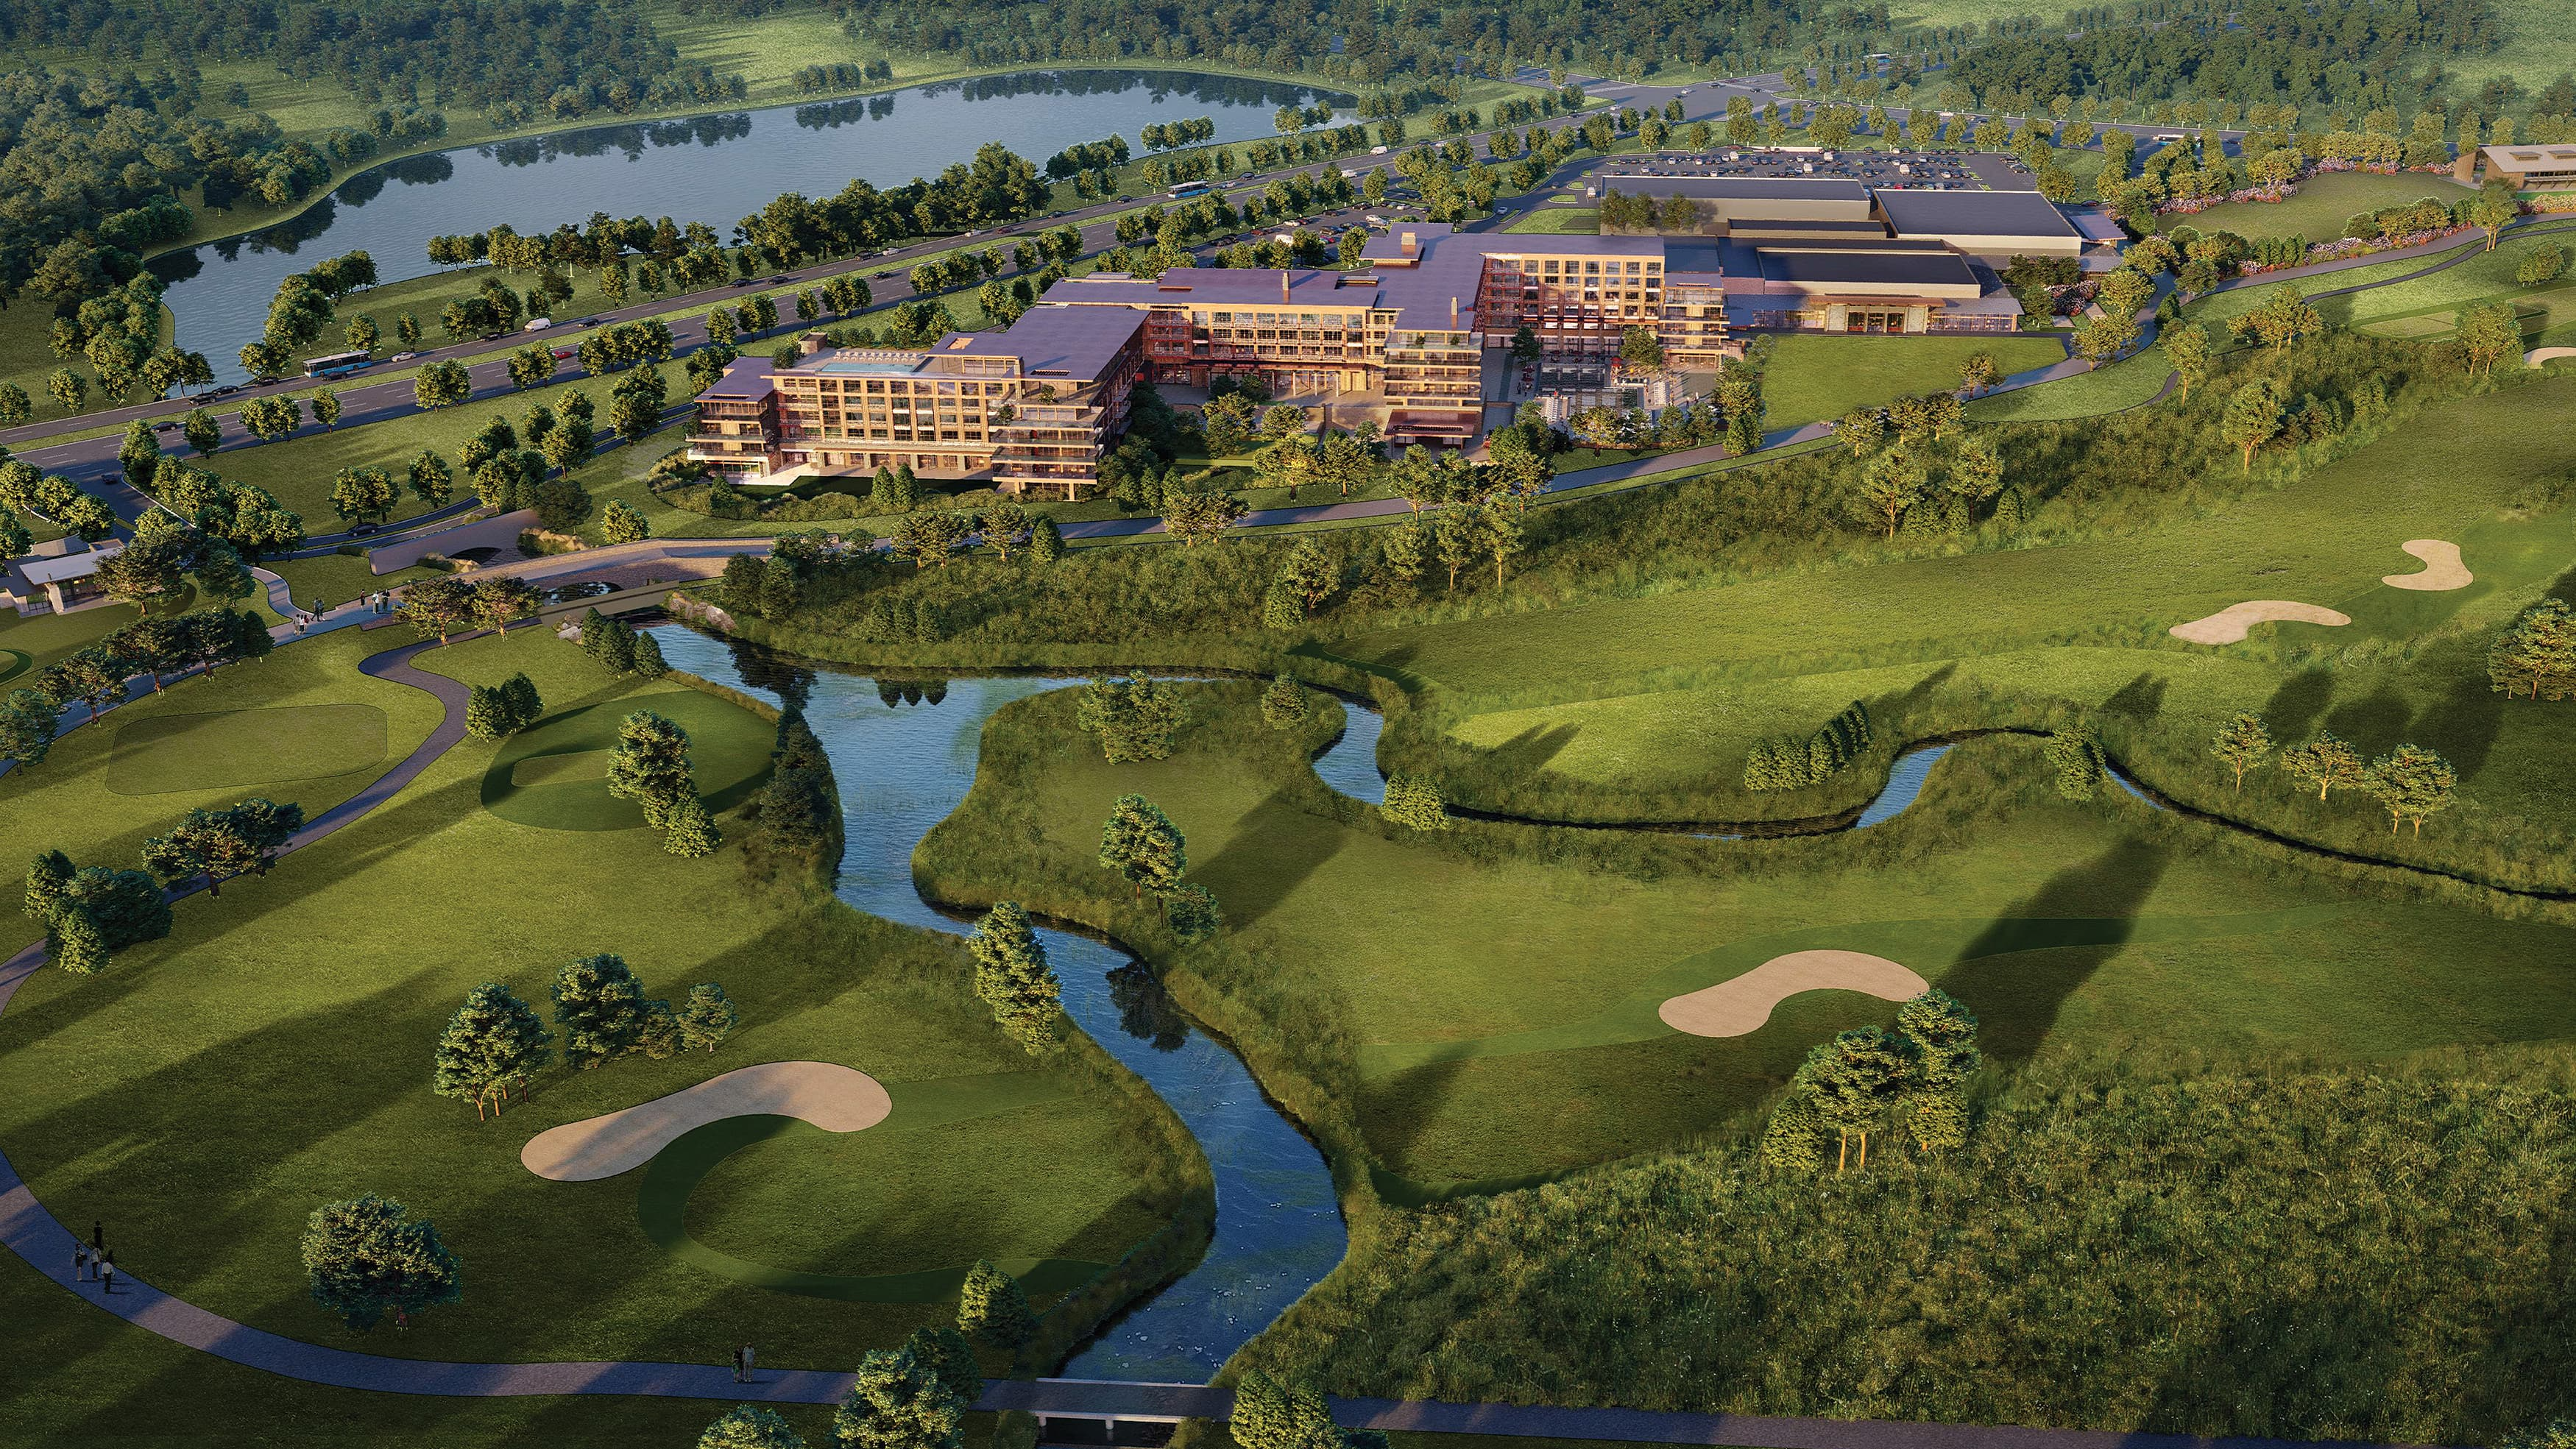 Aerial view of golf course at Omni PGA Resort in Frisco, Texas.